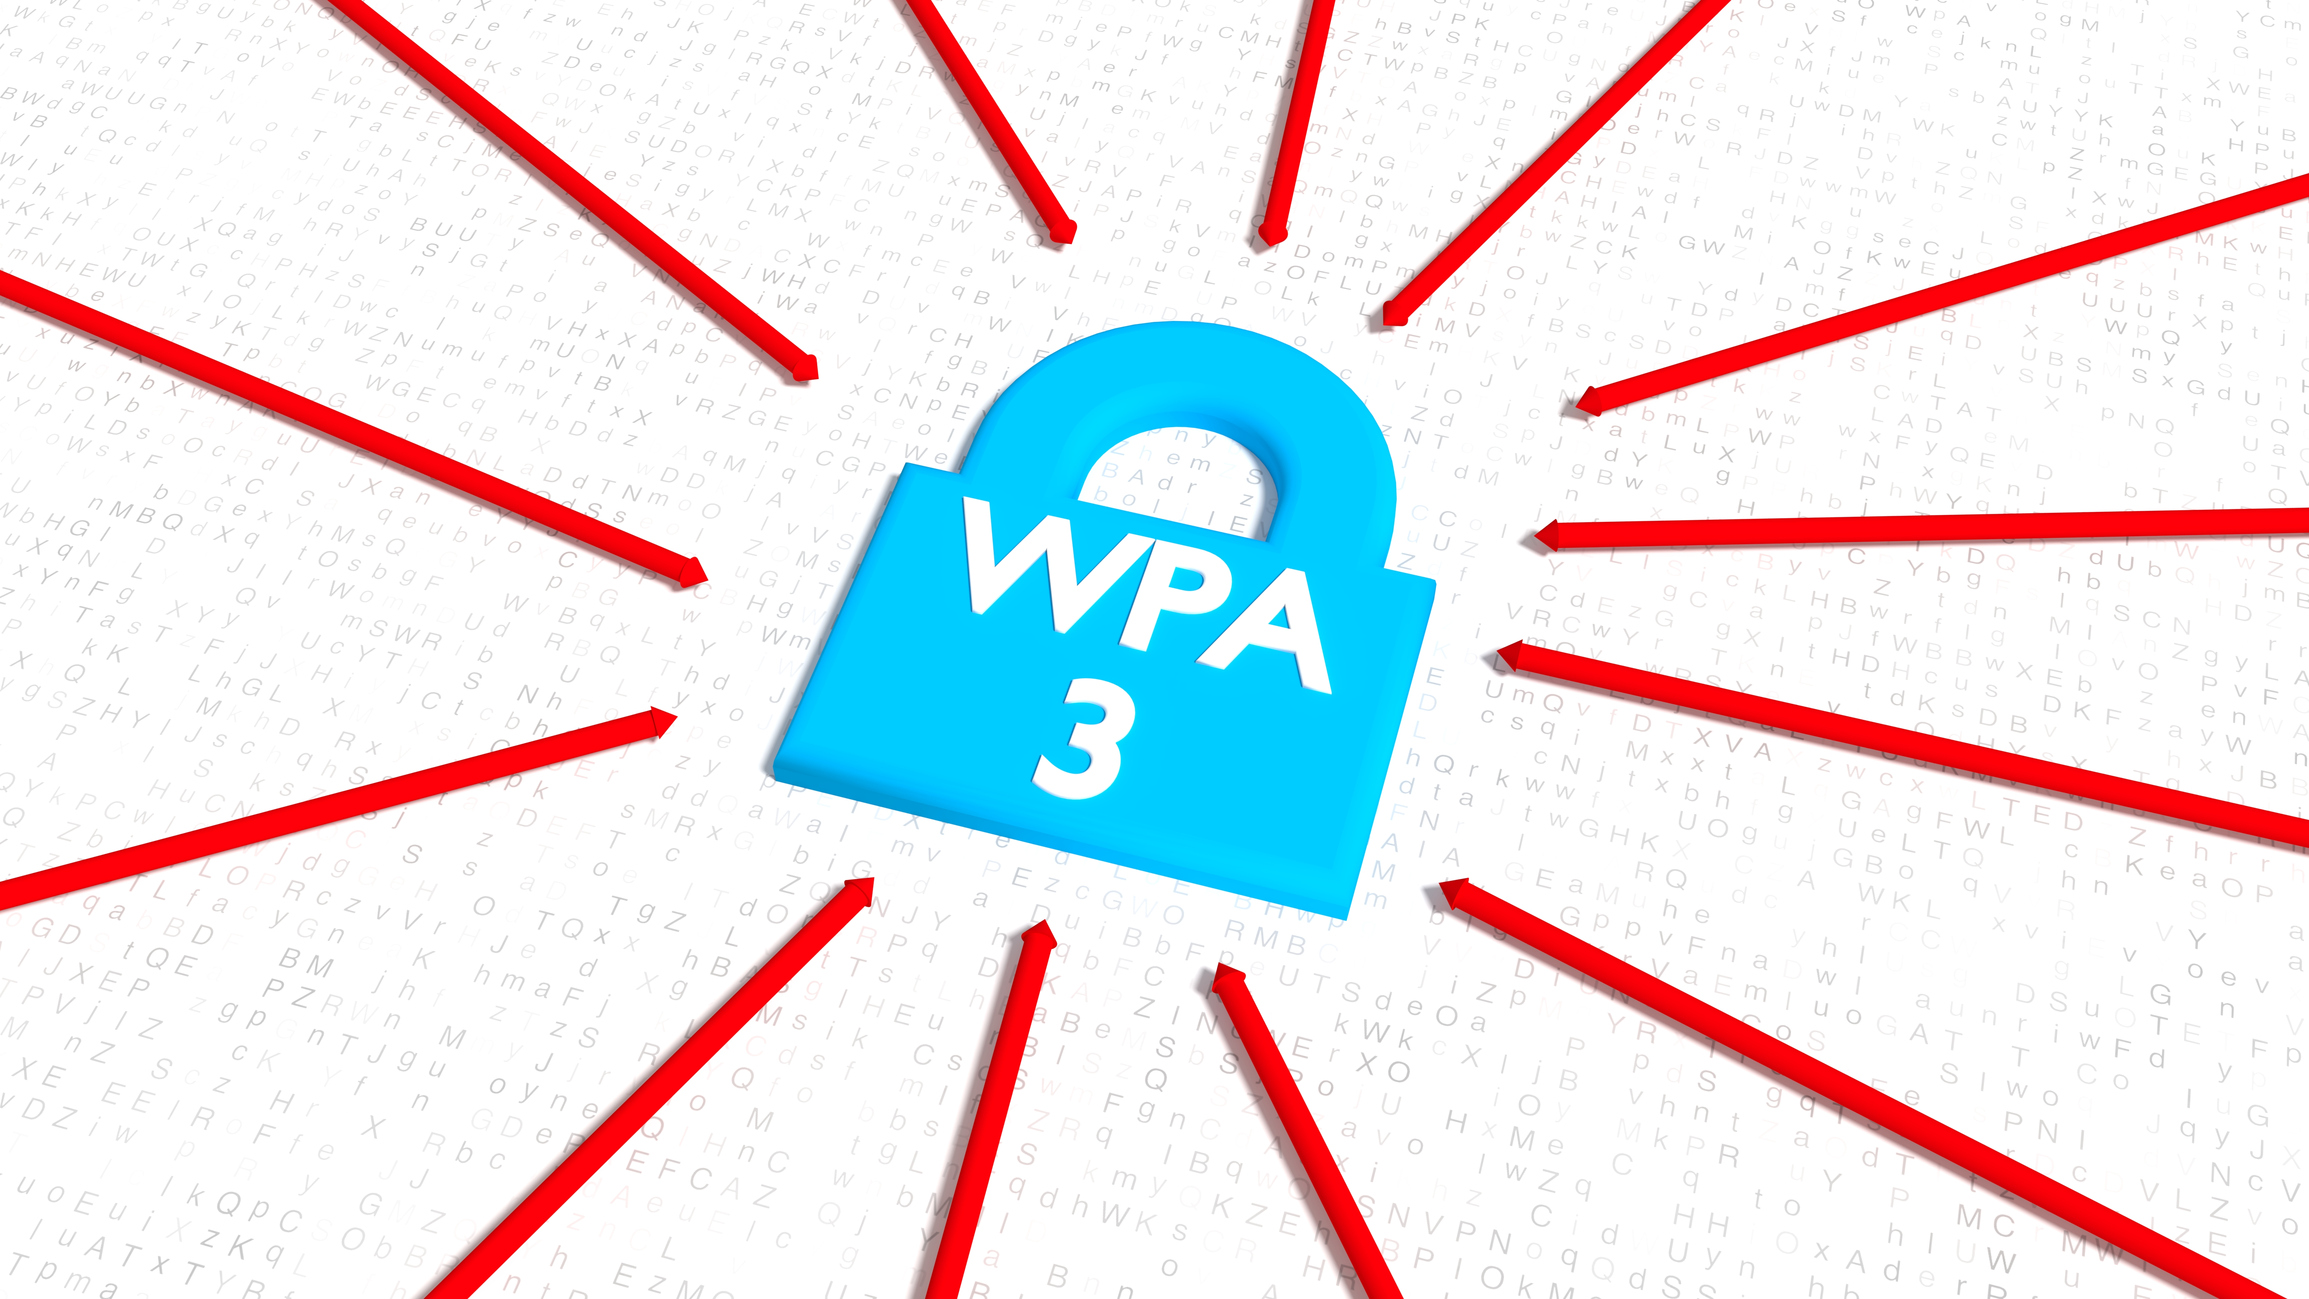 WPA3 security for wi-fi networks improves WPA2 standard